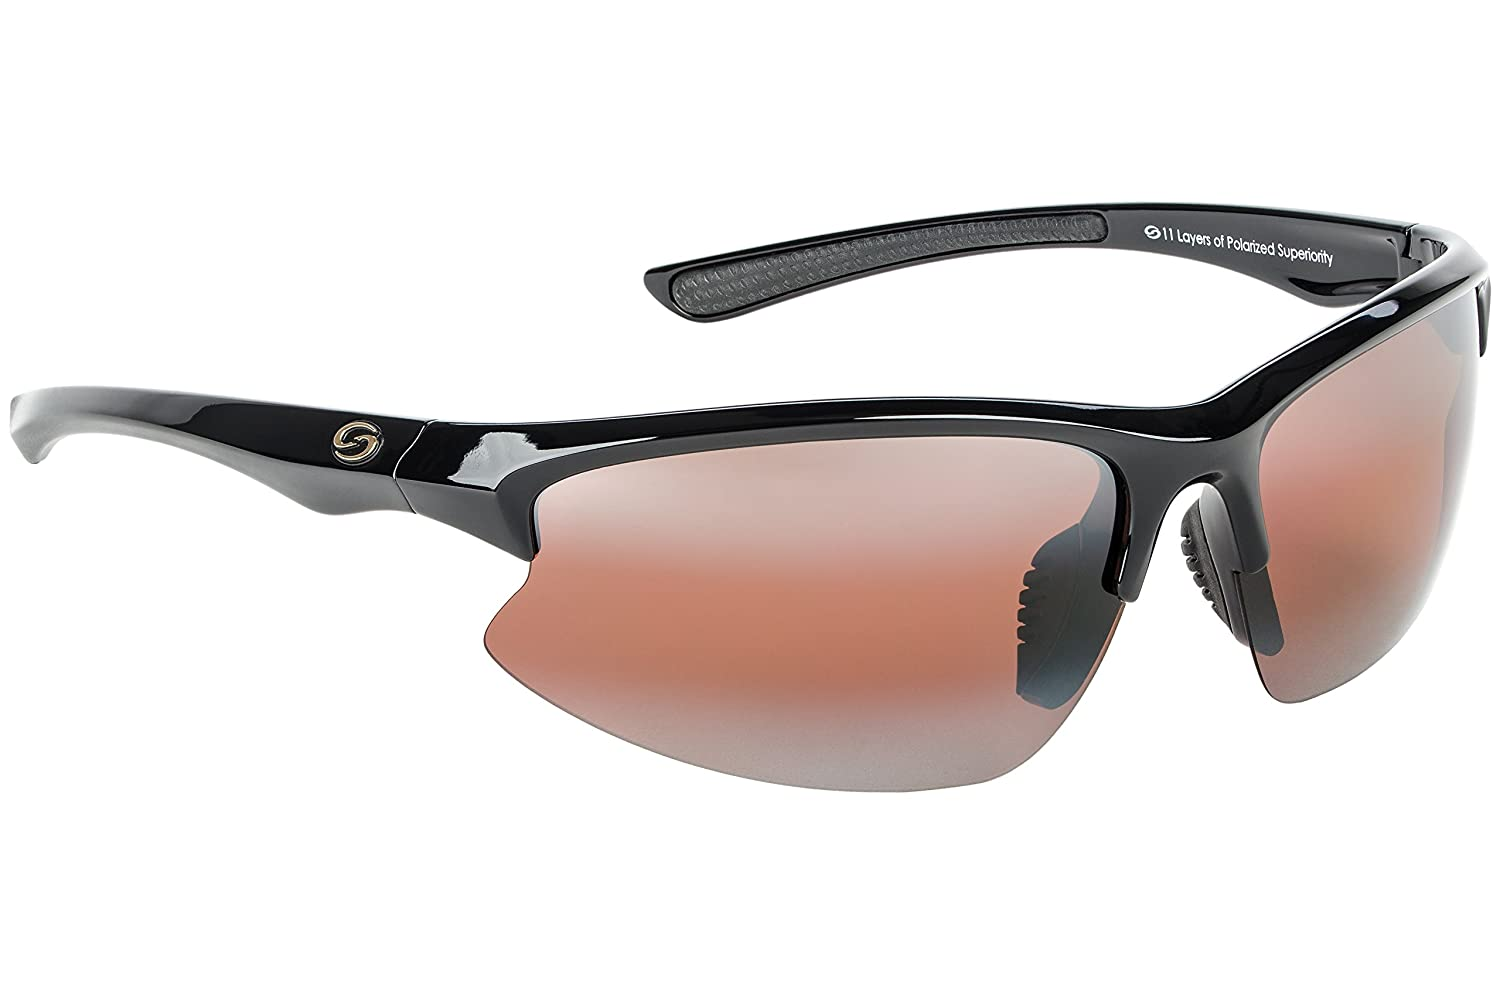 d2338d43a9 Strike King S11 Optics Semi Rimless Polarized Sunglasses (Shiny Black  Amber)  Amazon.ca  Sports   Outdoors